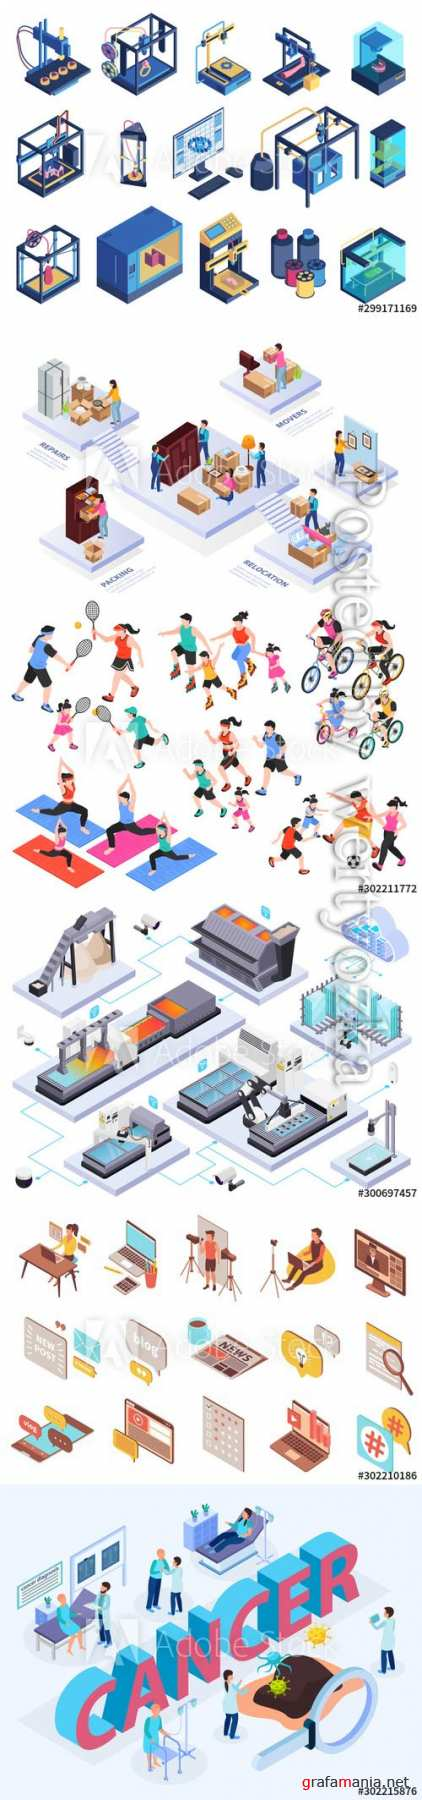 Flat isometric vector 3D concept illustration # 81